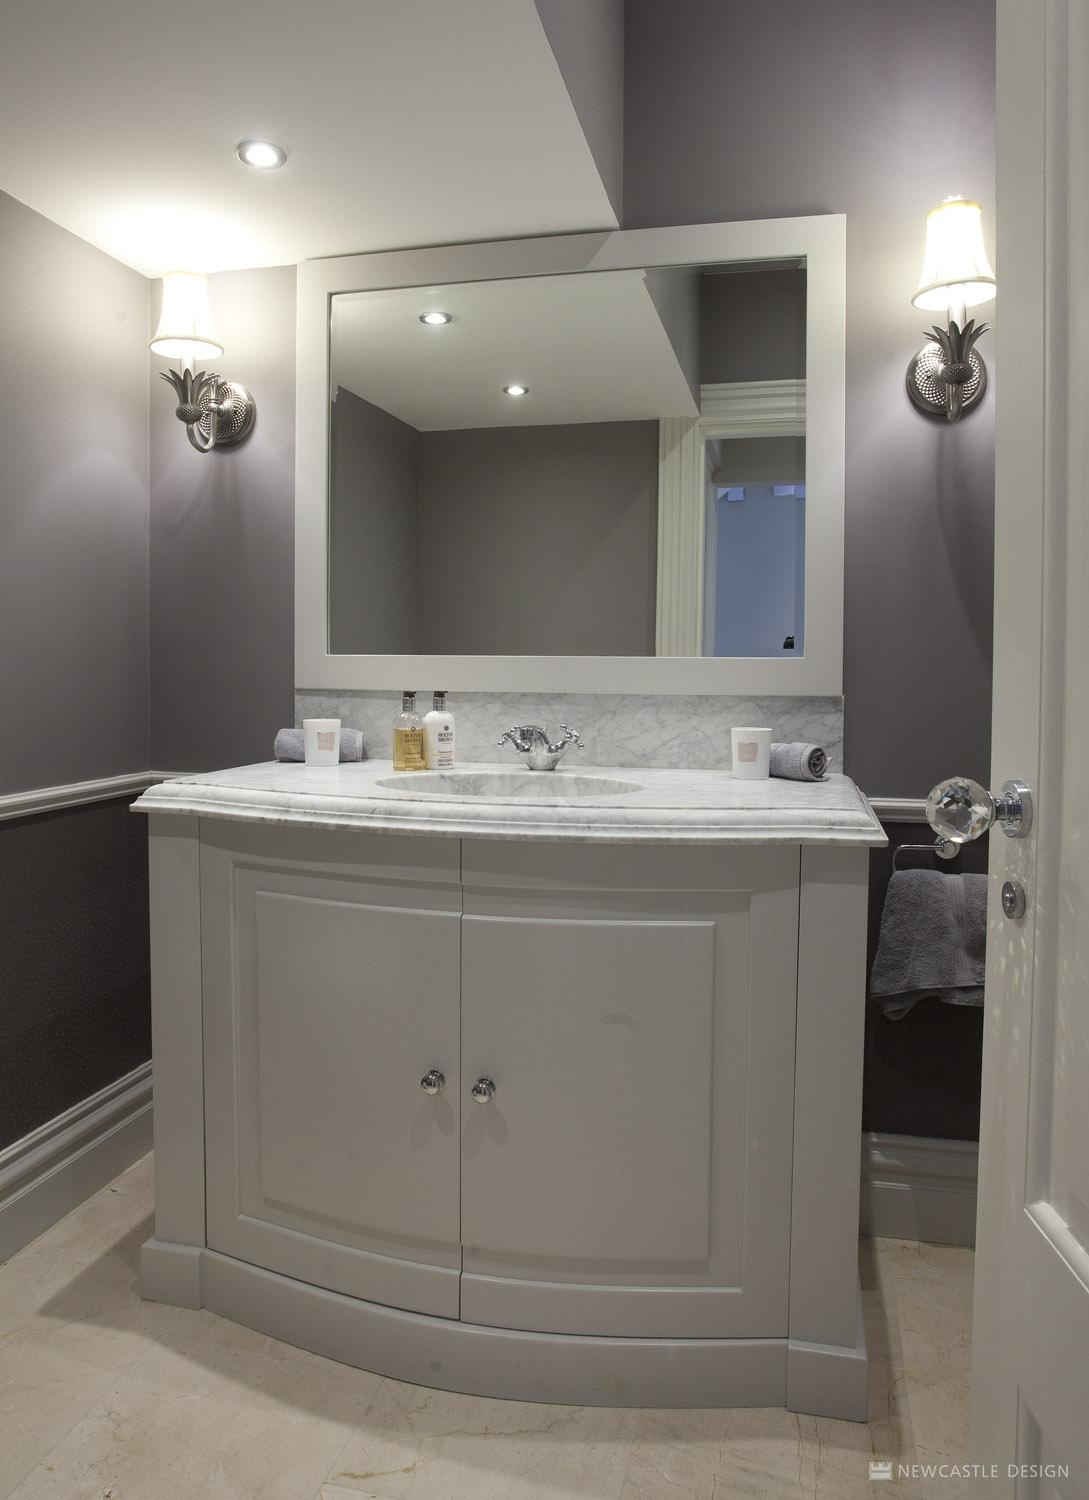 Bathroom Vanity Units Newcastle Design